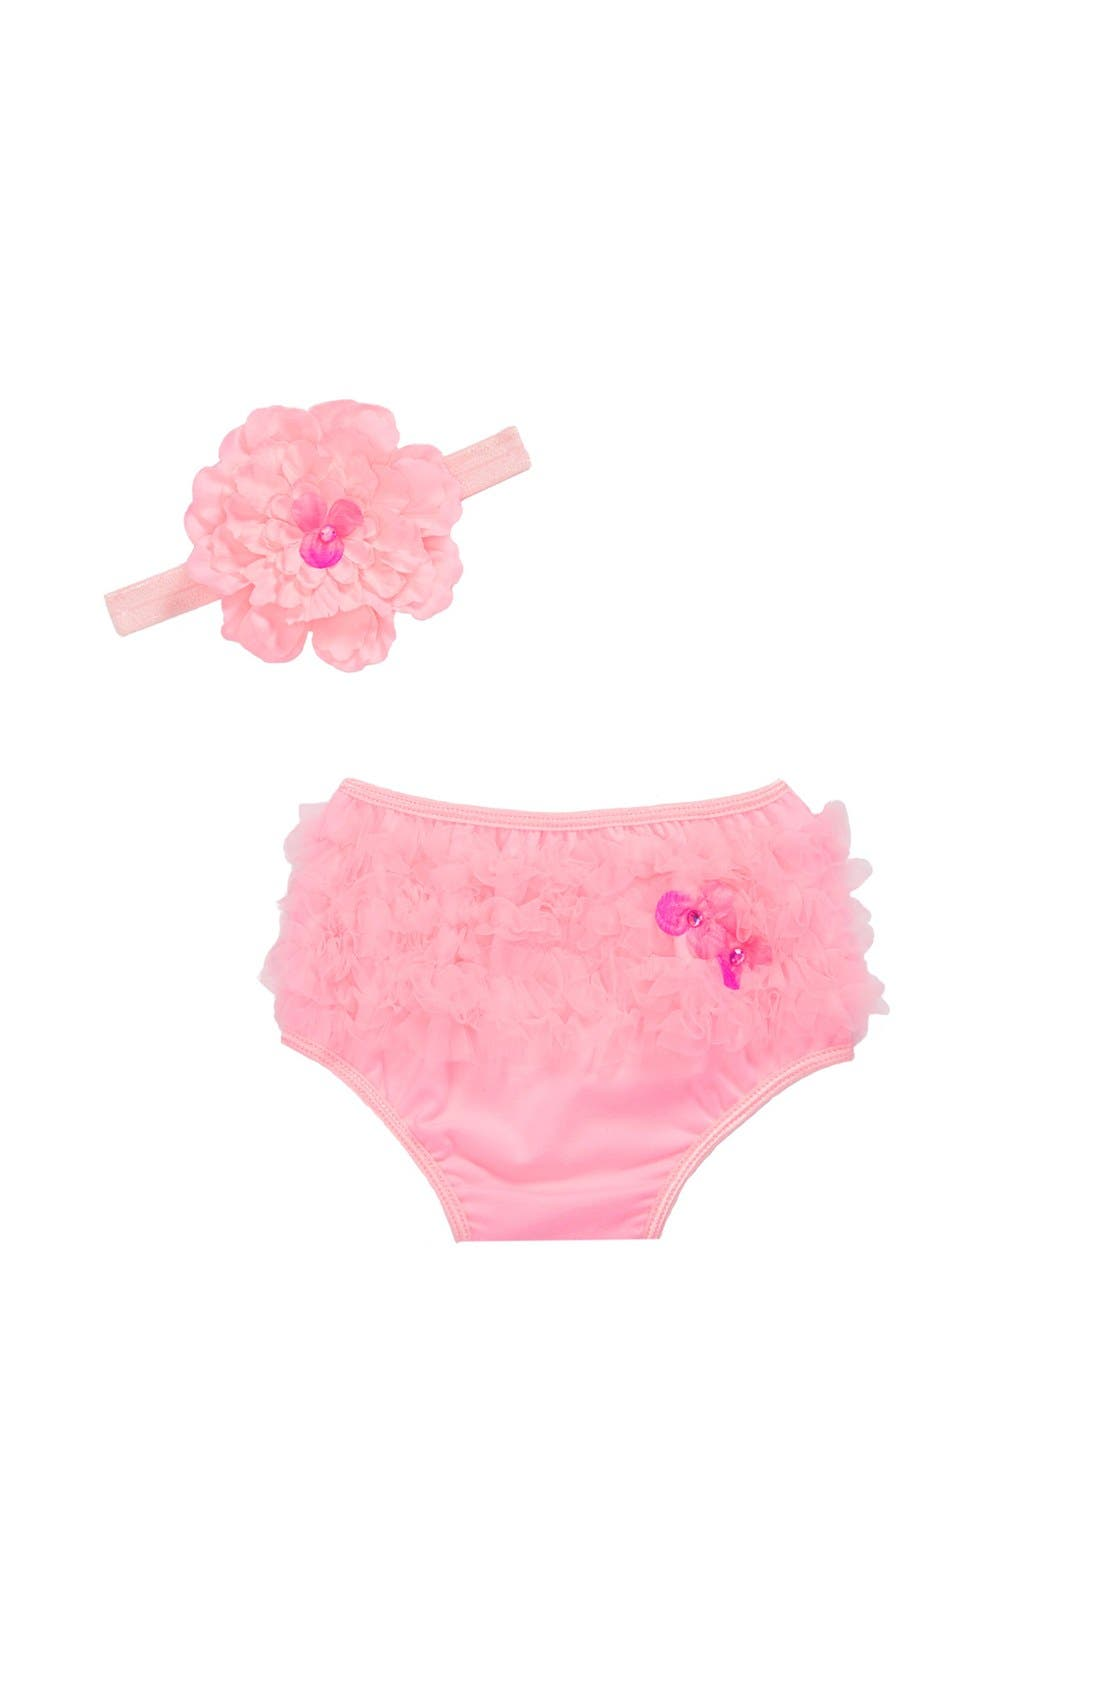 Main Image - PLH Bows & Laces Ruffle Diaper Cover & Headband Set (Infant)